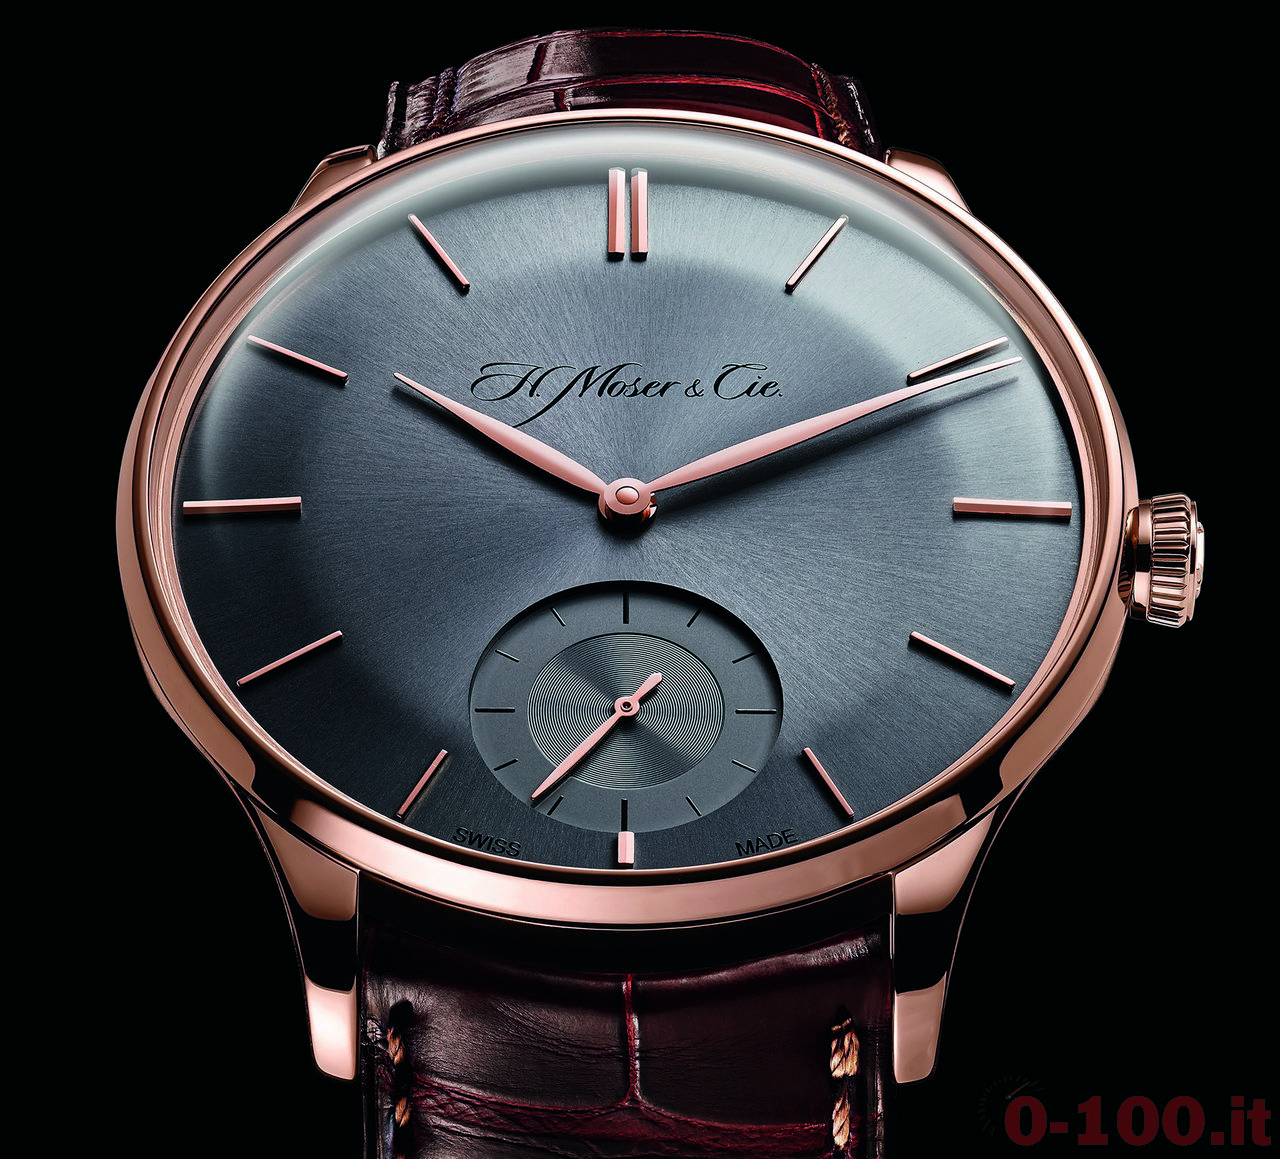 Baselworld-2014-H. Moser & Cie Venturer Small Seconds _0-10011